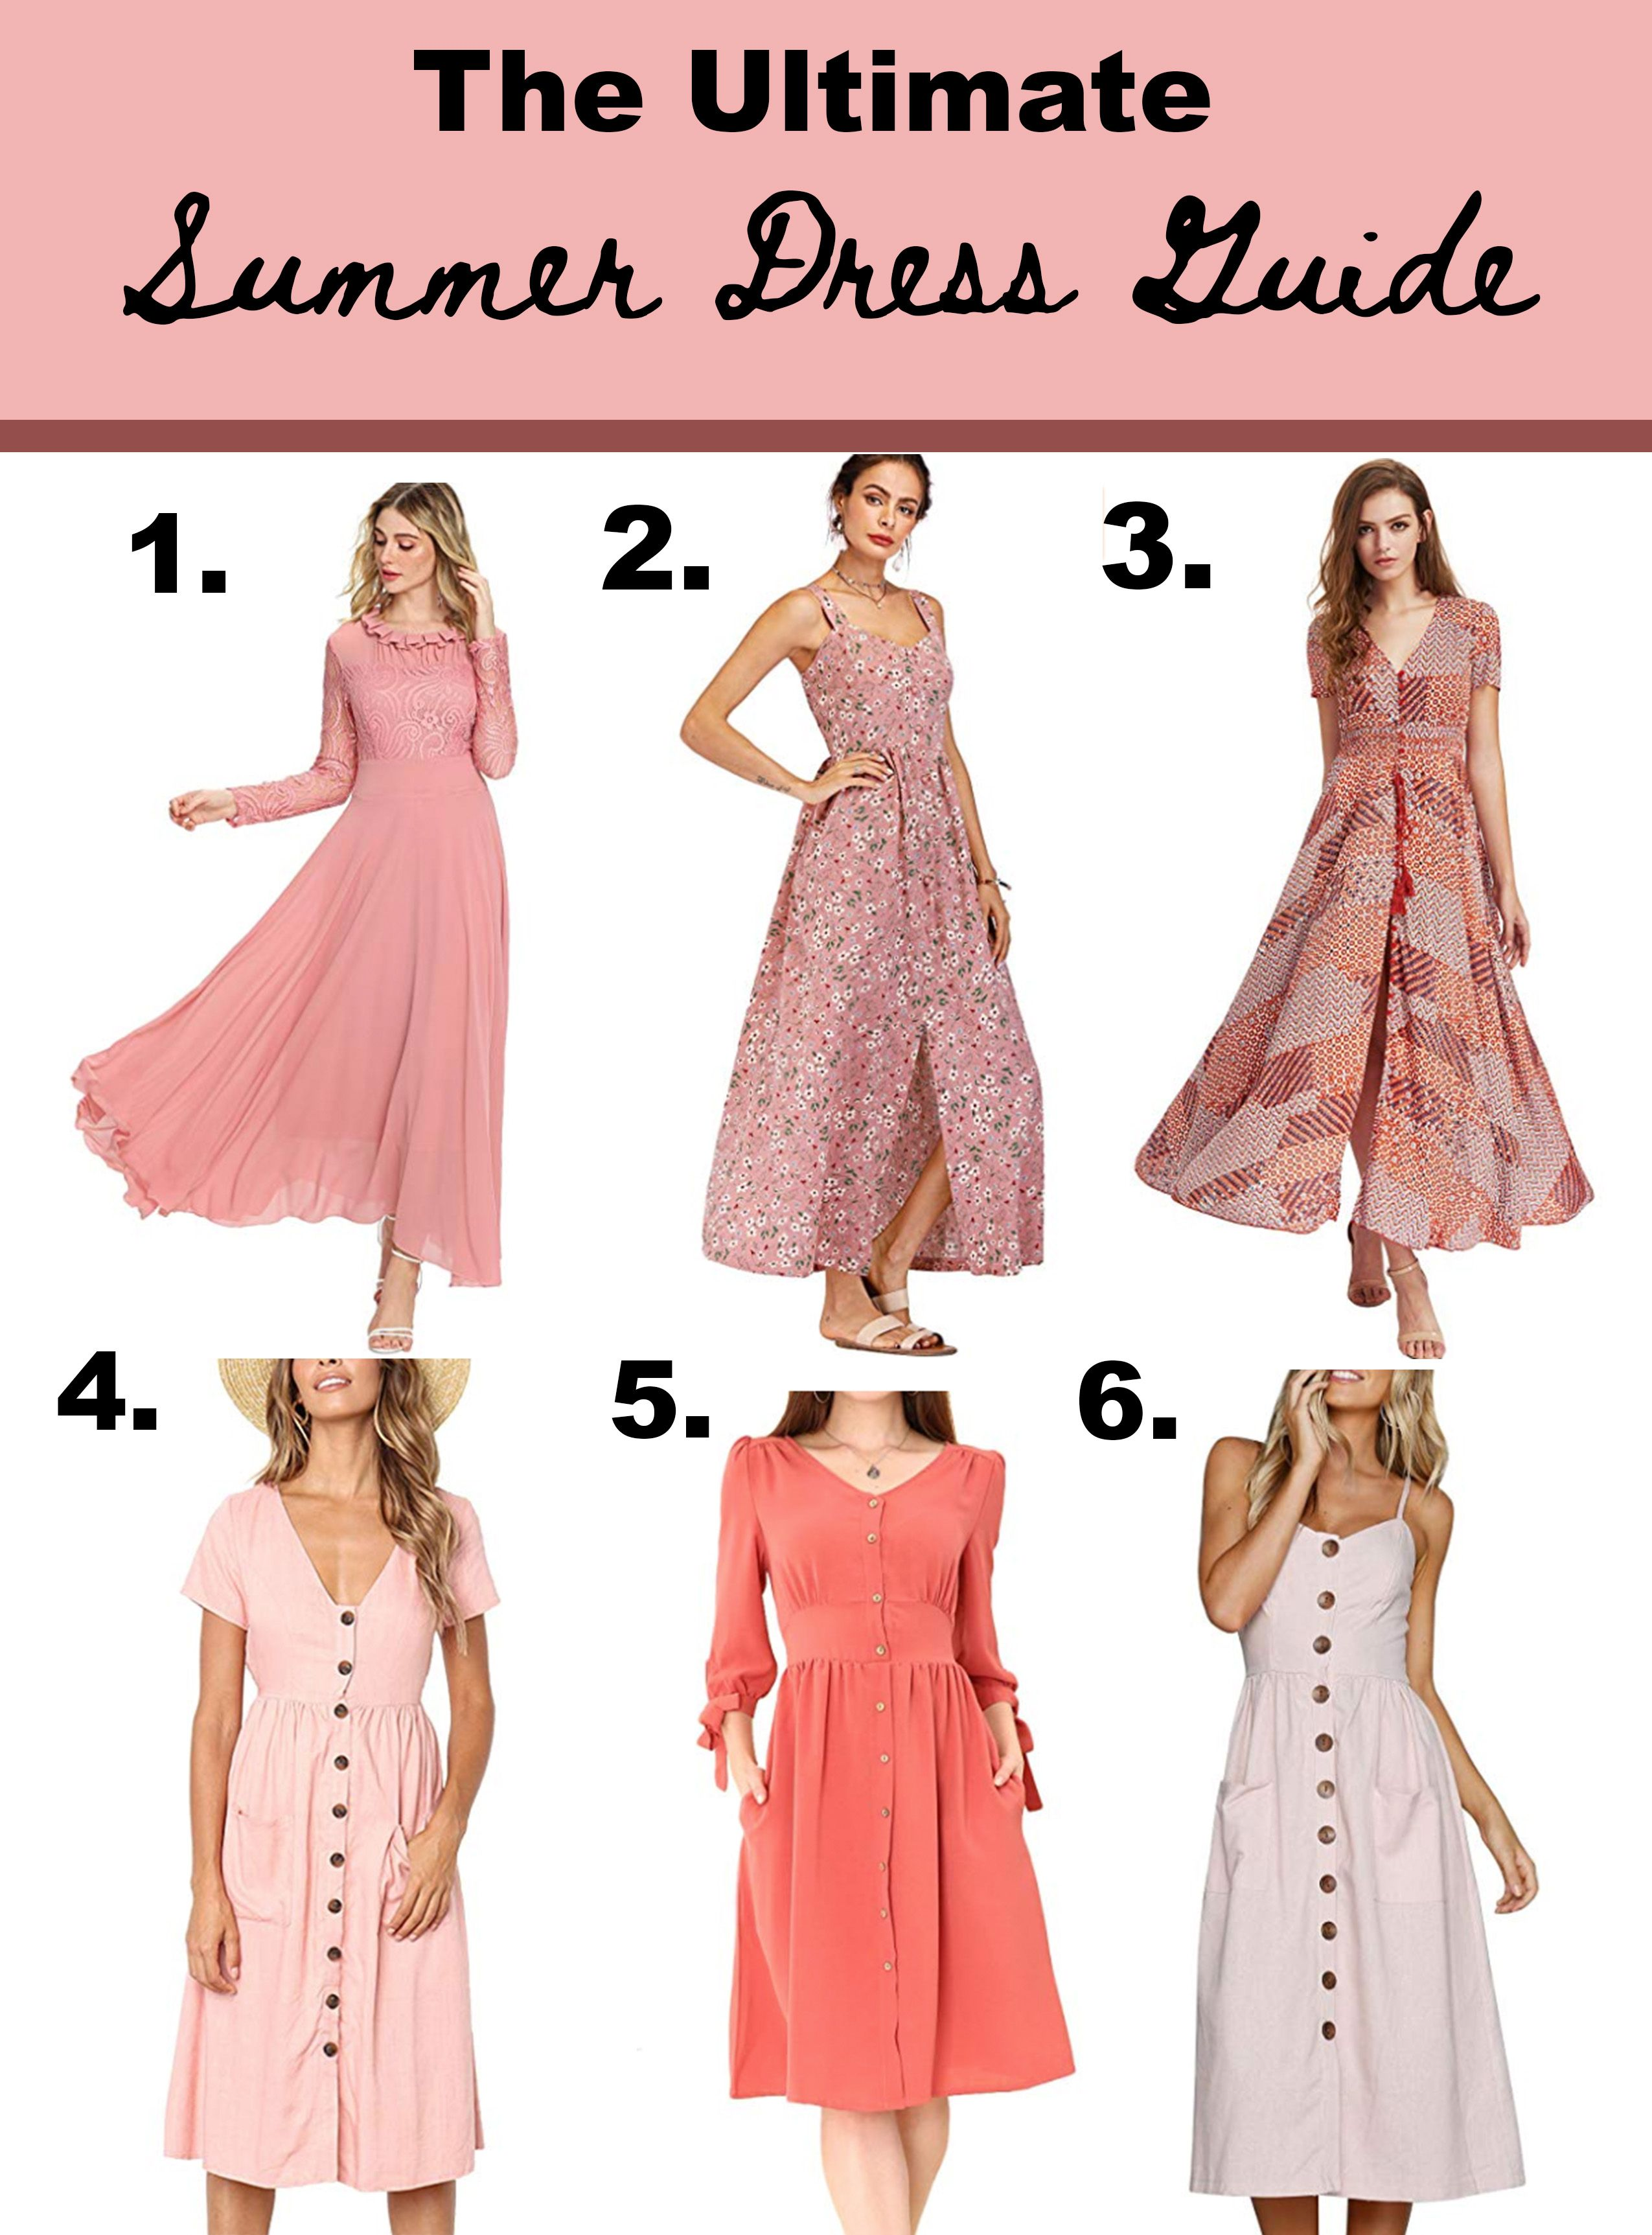 Ultimate Summer Dress Guide From Amazon Summer Dresses Clothes For Women Dresses